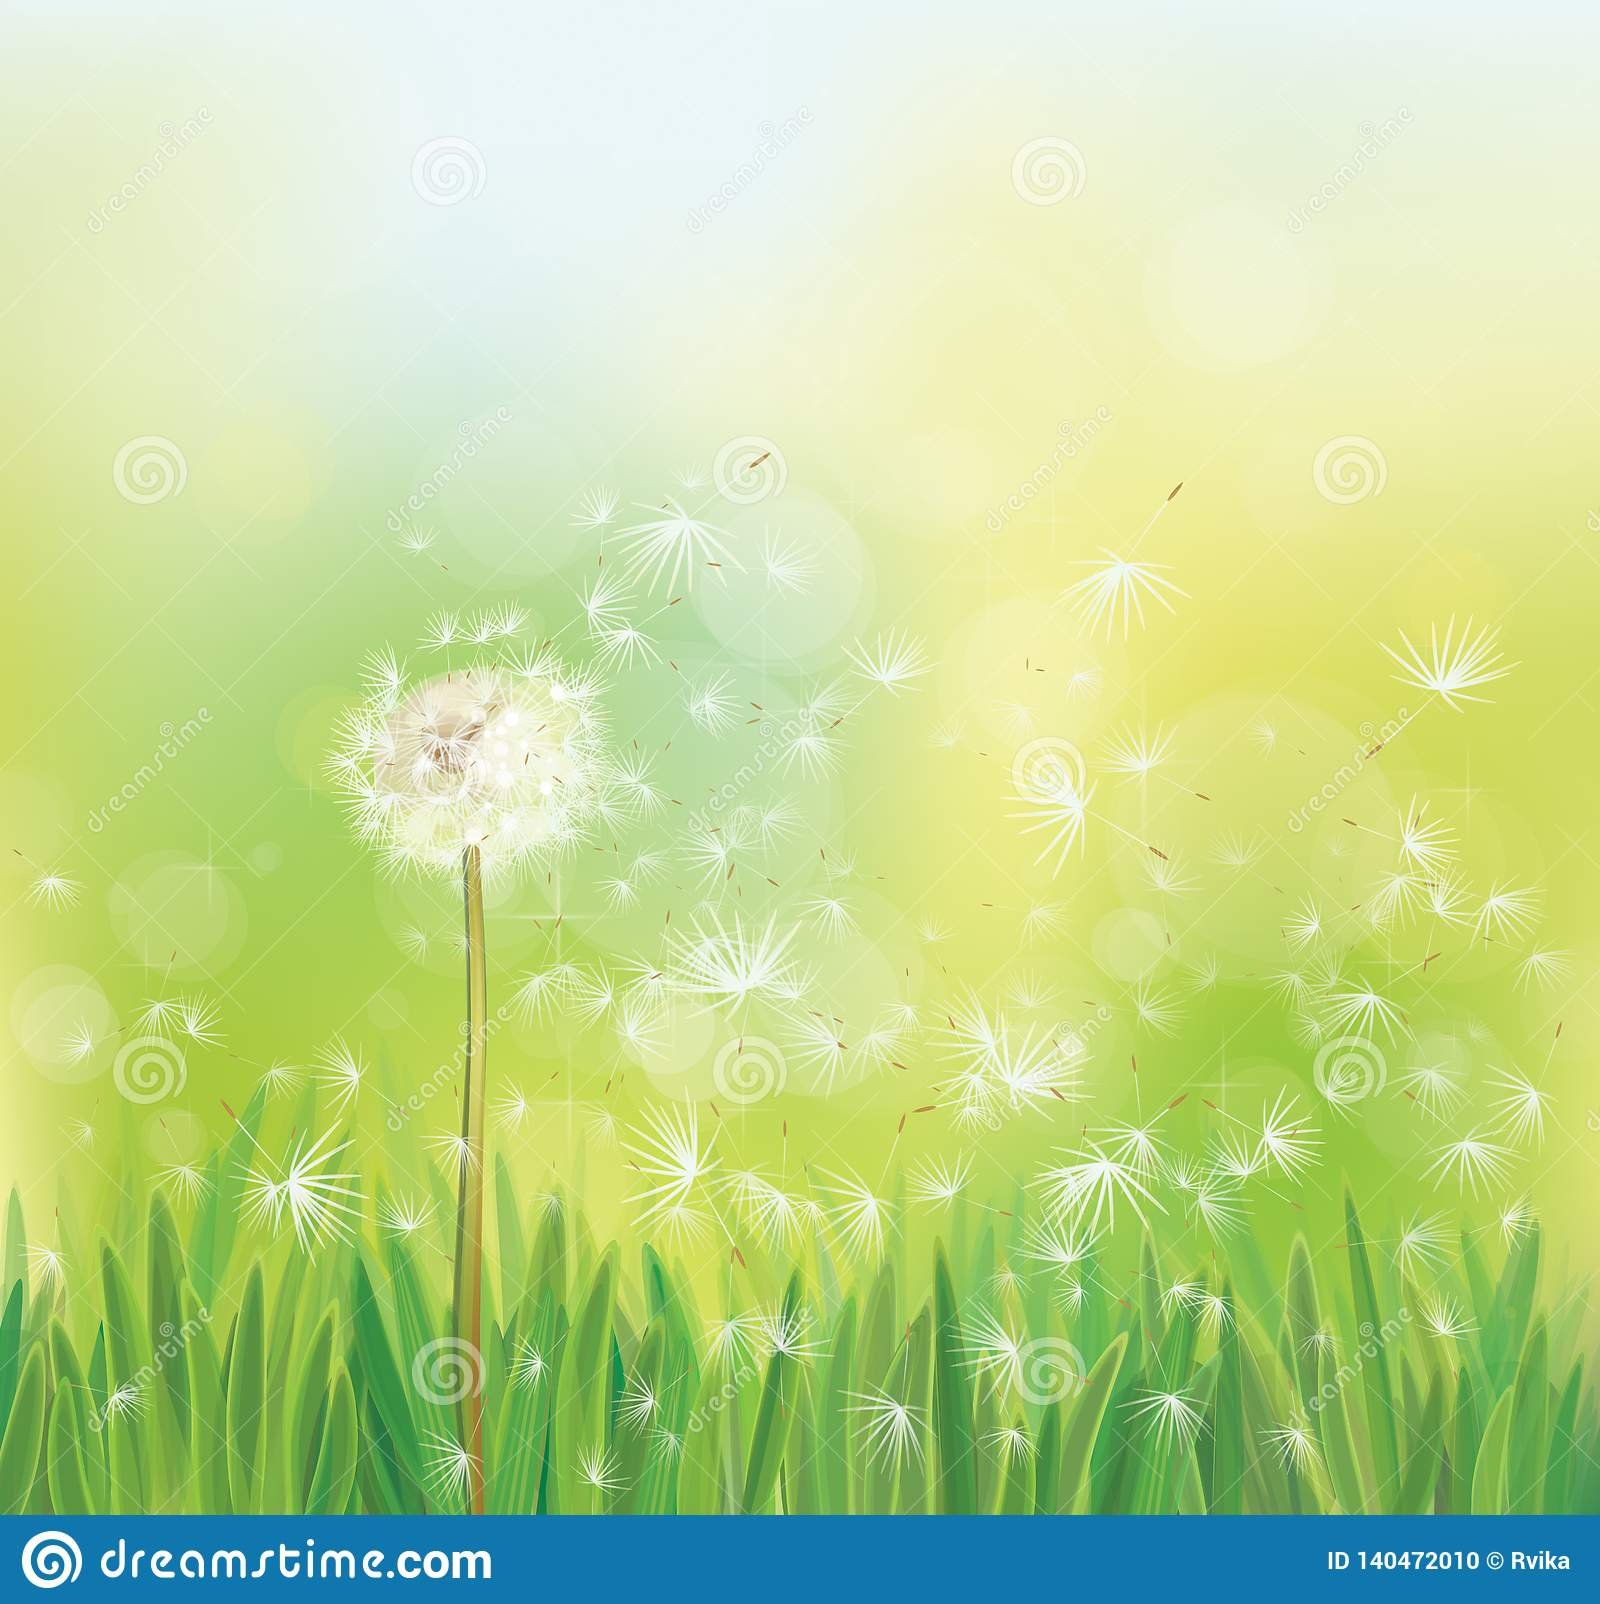 d1c6478940a46 Vector Spring White Dandelion. Stock Vector - Illustration of grass ...